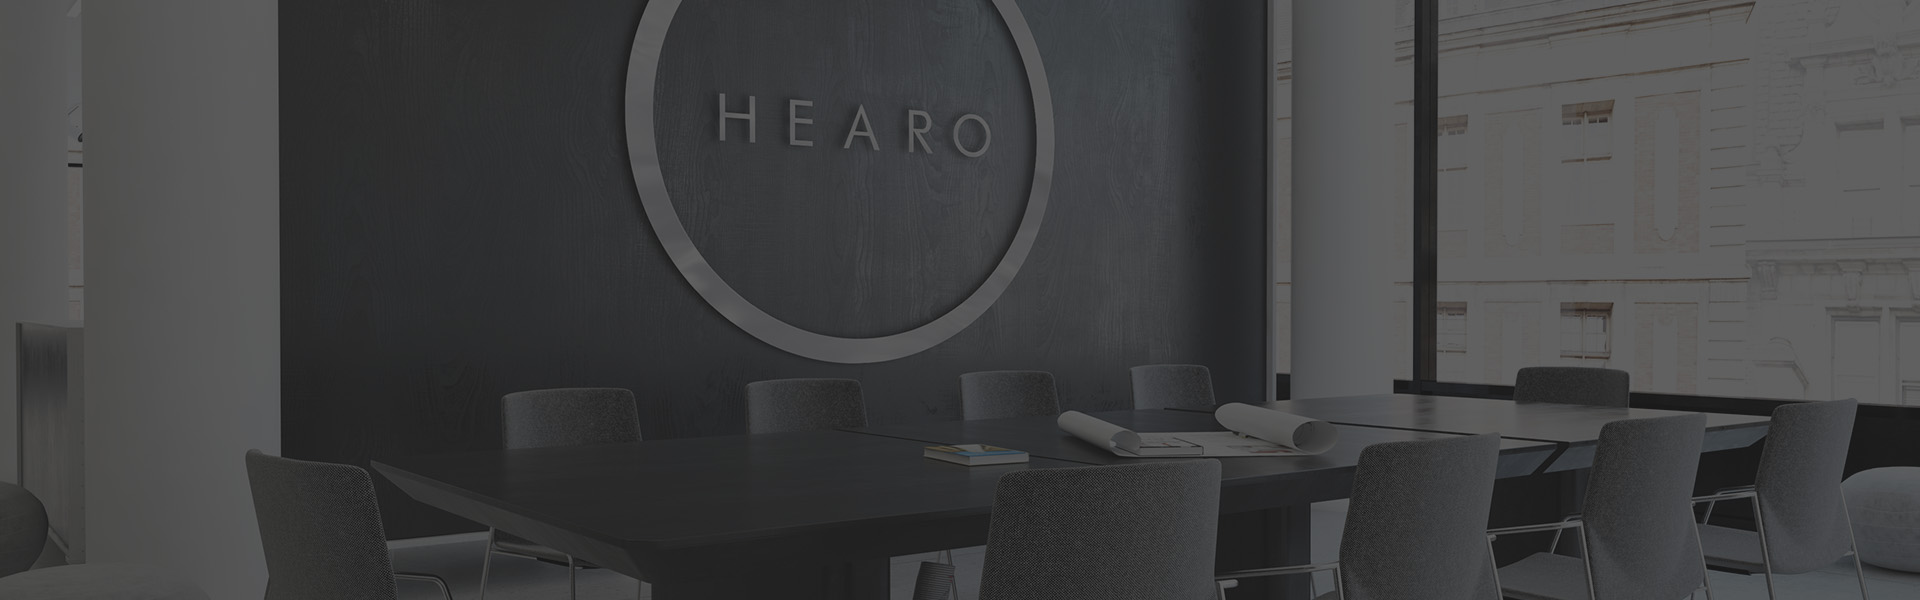 Hearo Technologies News HQ Blog Updates